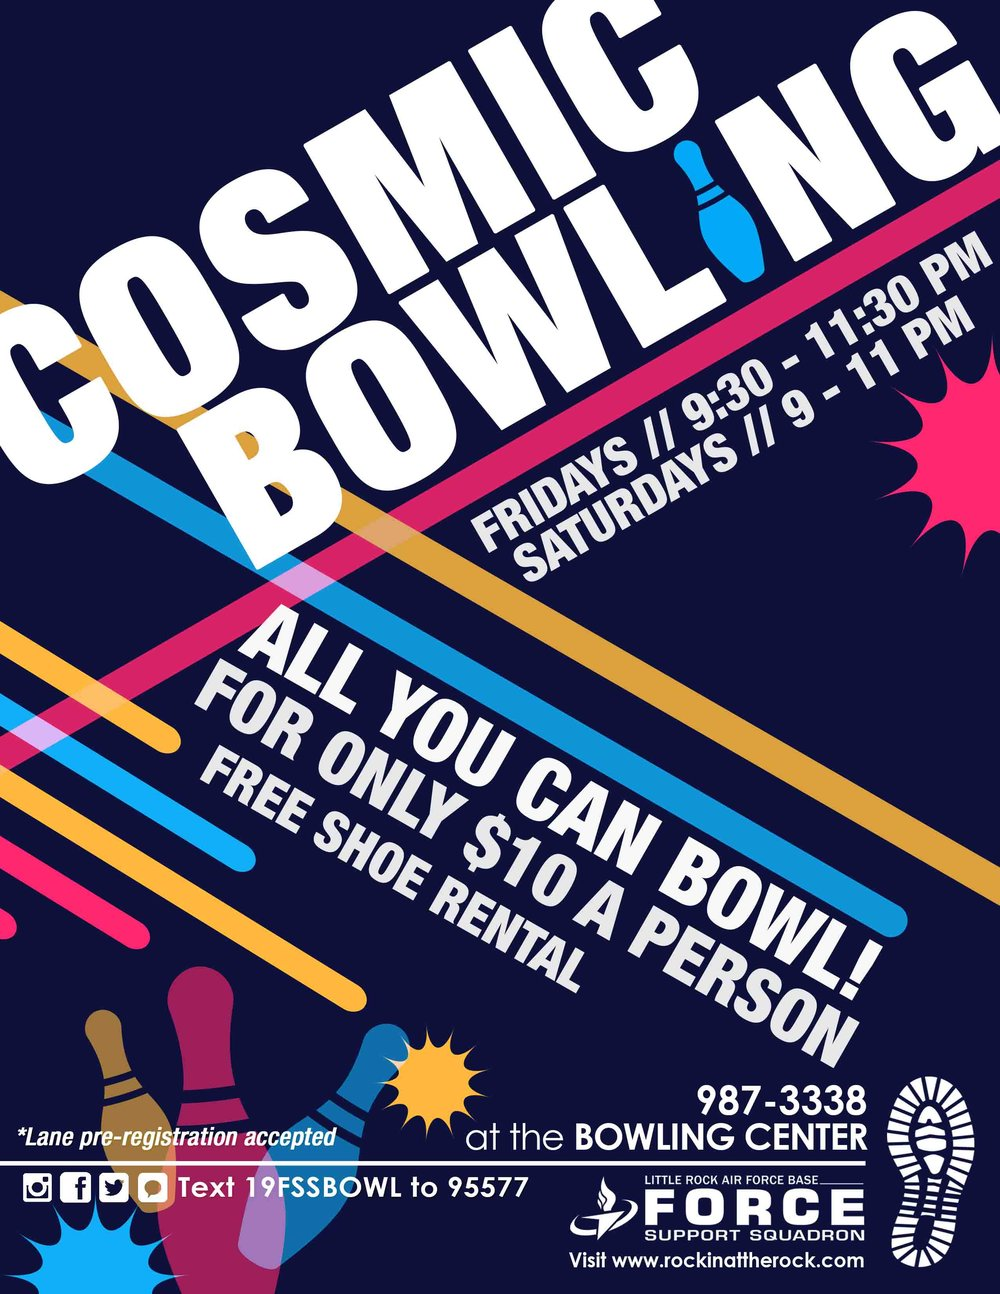 2017_11_Bowling_Cosmic_Small.jpg